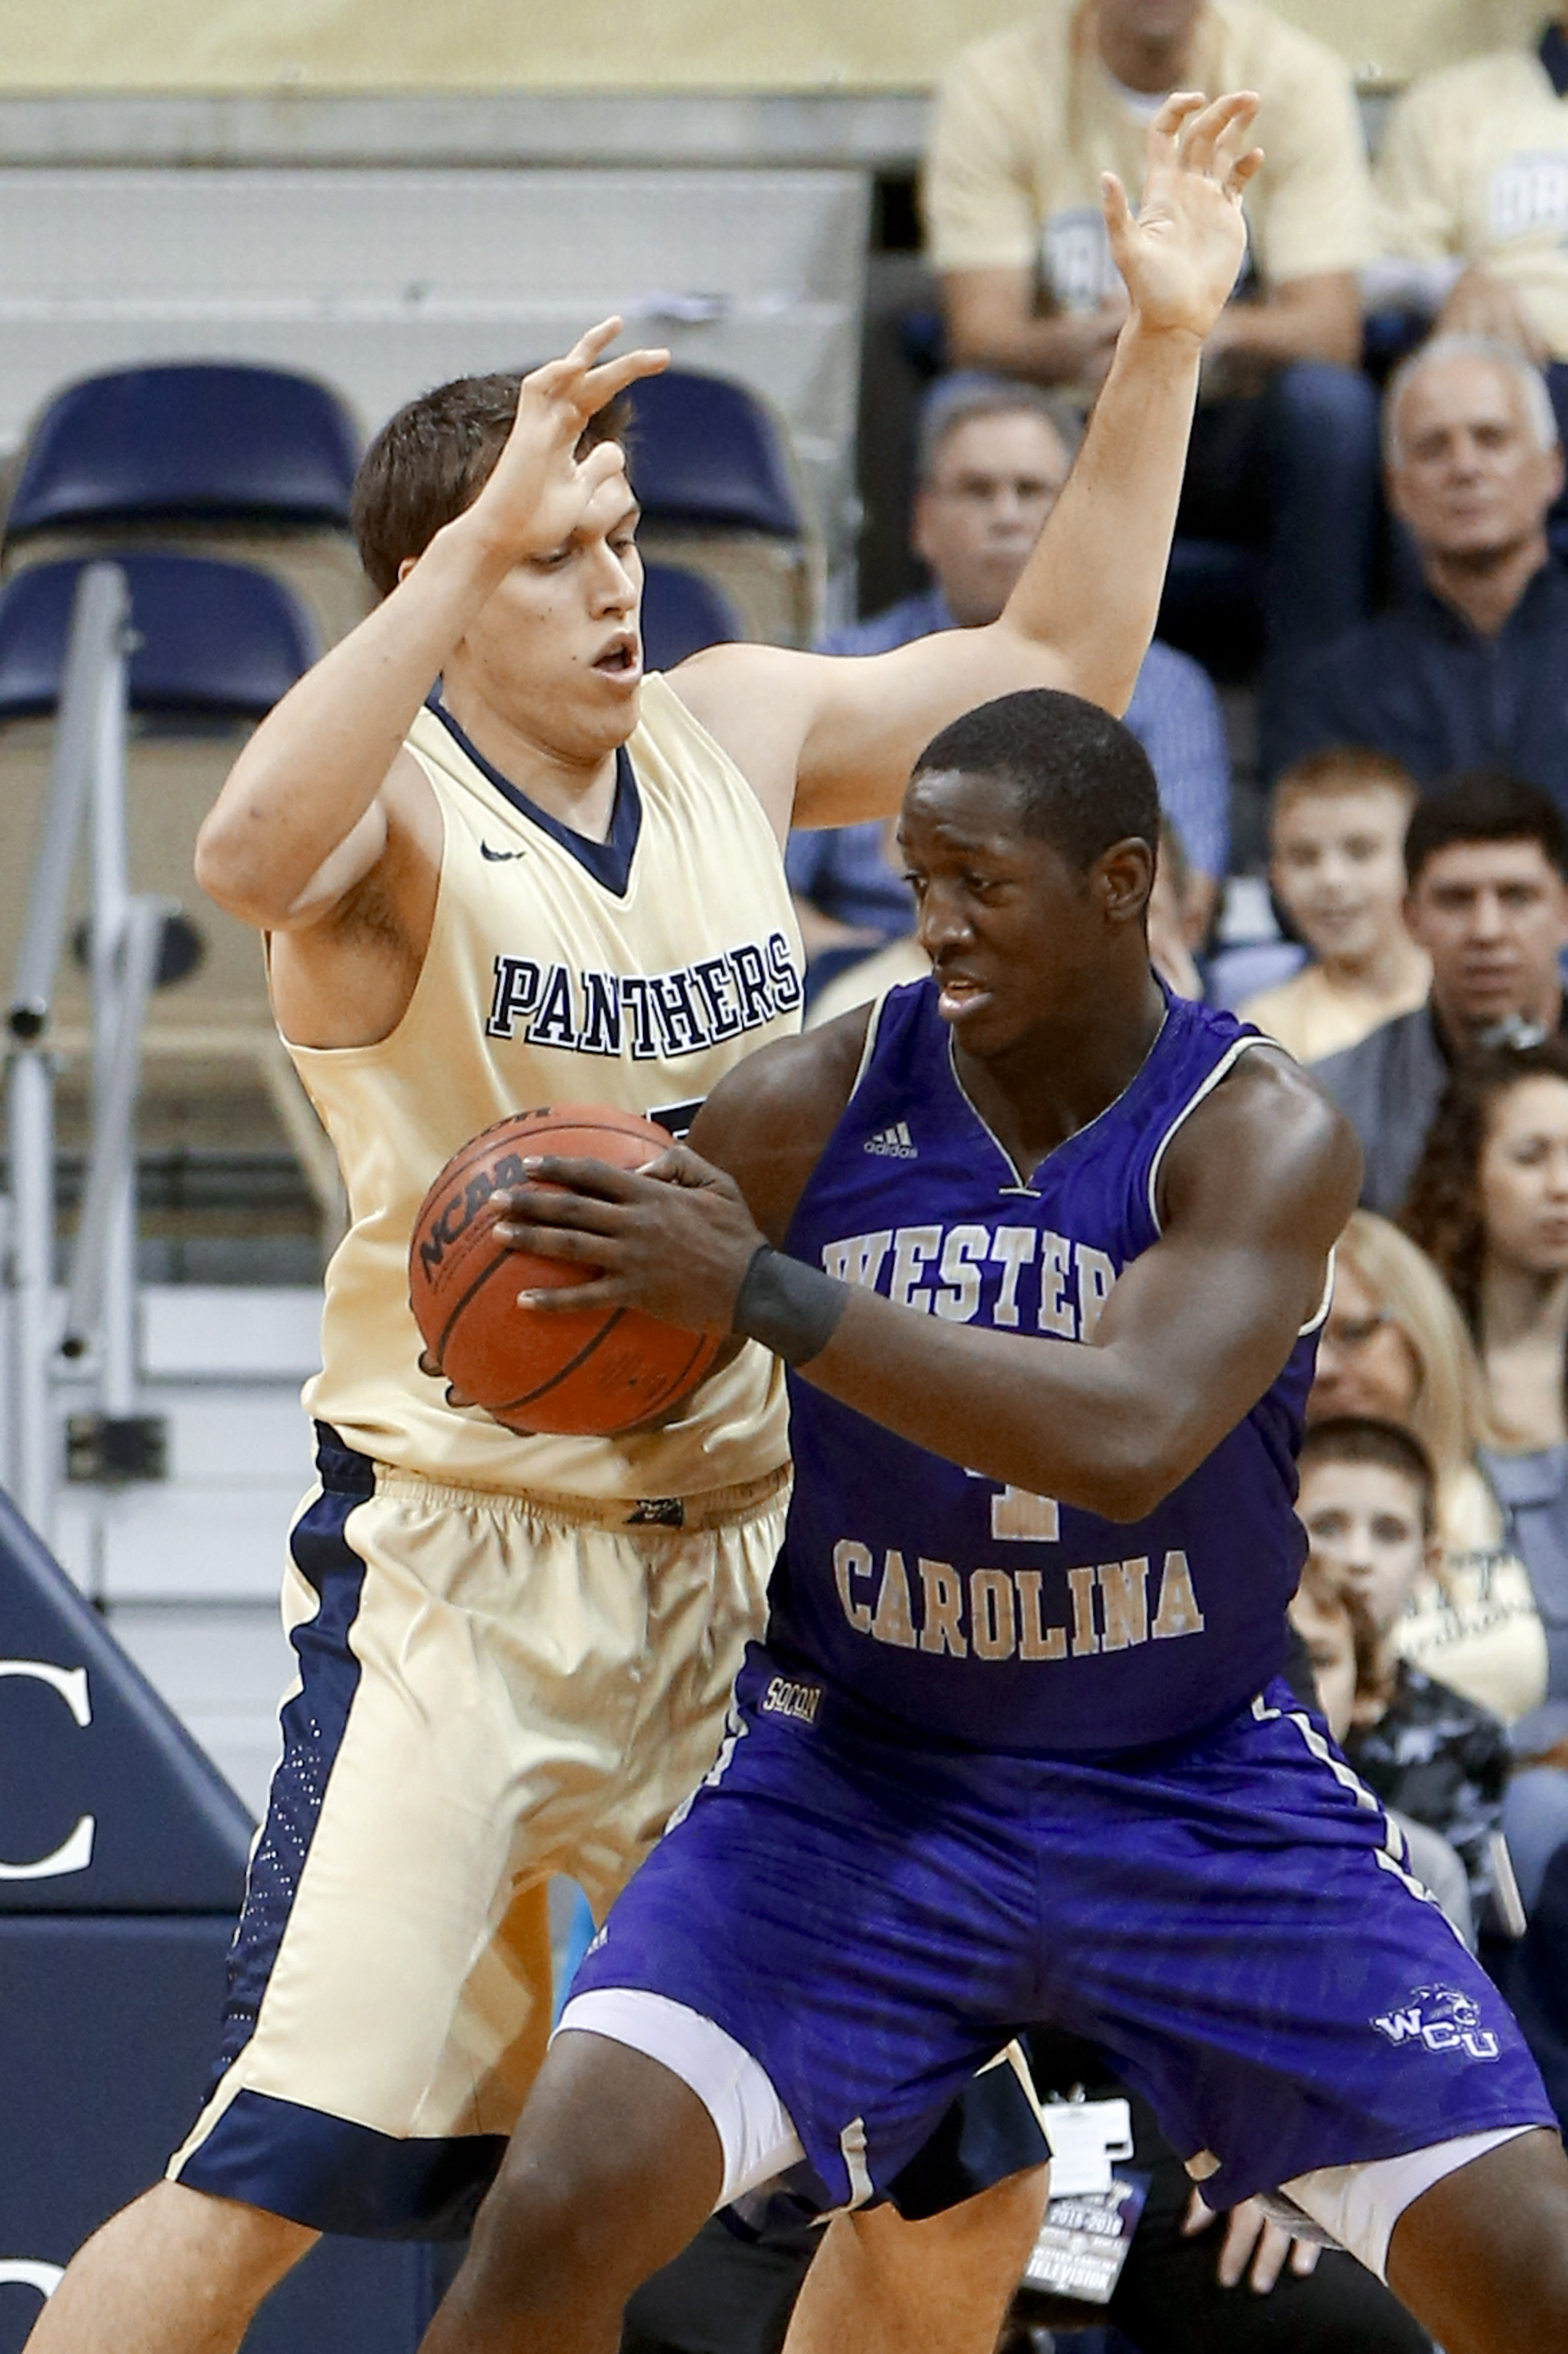 Pittsburgh's Rafael Maia, left, defends as Western Carolina's Torrion Brummitt, right, looks to shoot in the first half of an NCAA college basketball game, Wednesday, Dec. 23, 2015, in Pittsburgh. (AP Photo/Keith Srakocic)